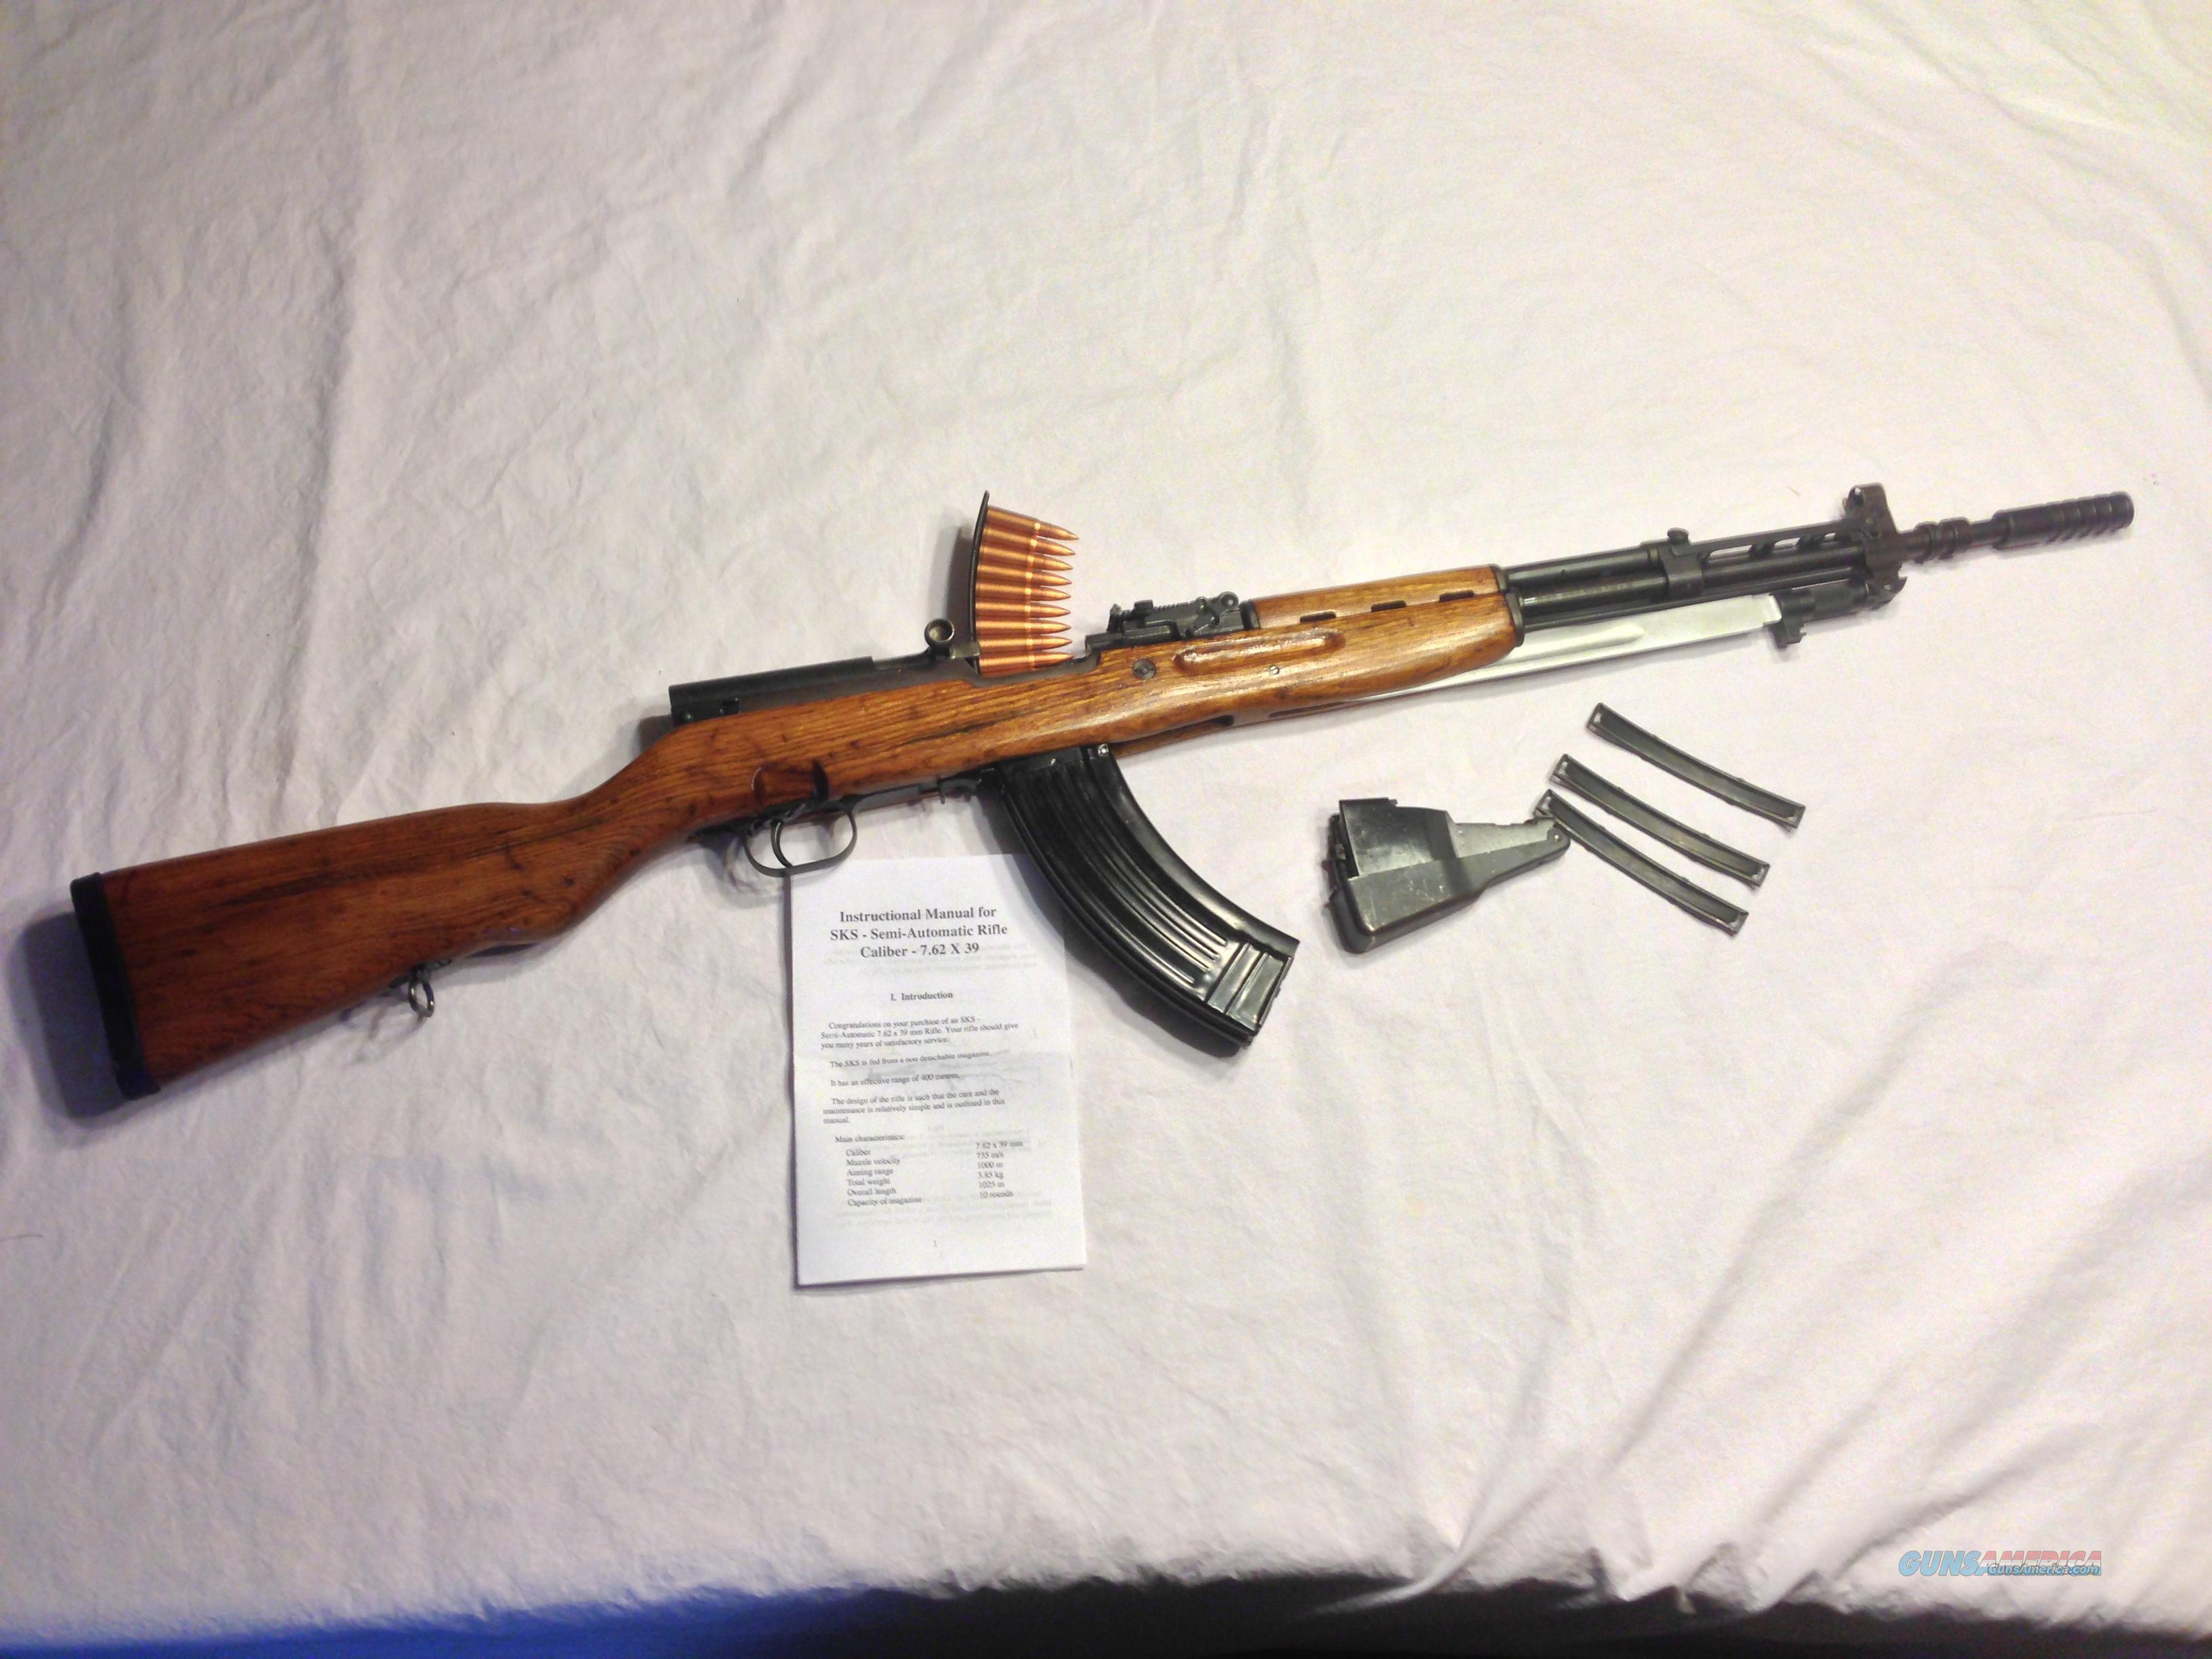 Refinished Yugo SKS 59/66 w/Grenade Launcher with 30 round mag. Guns